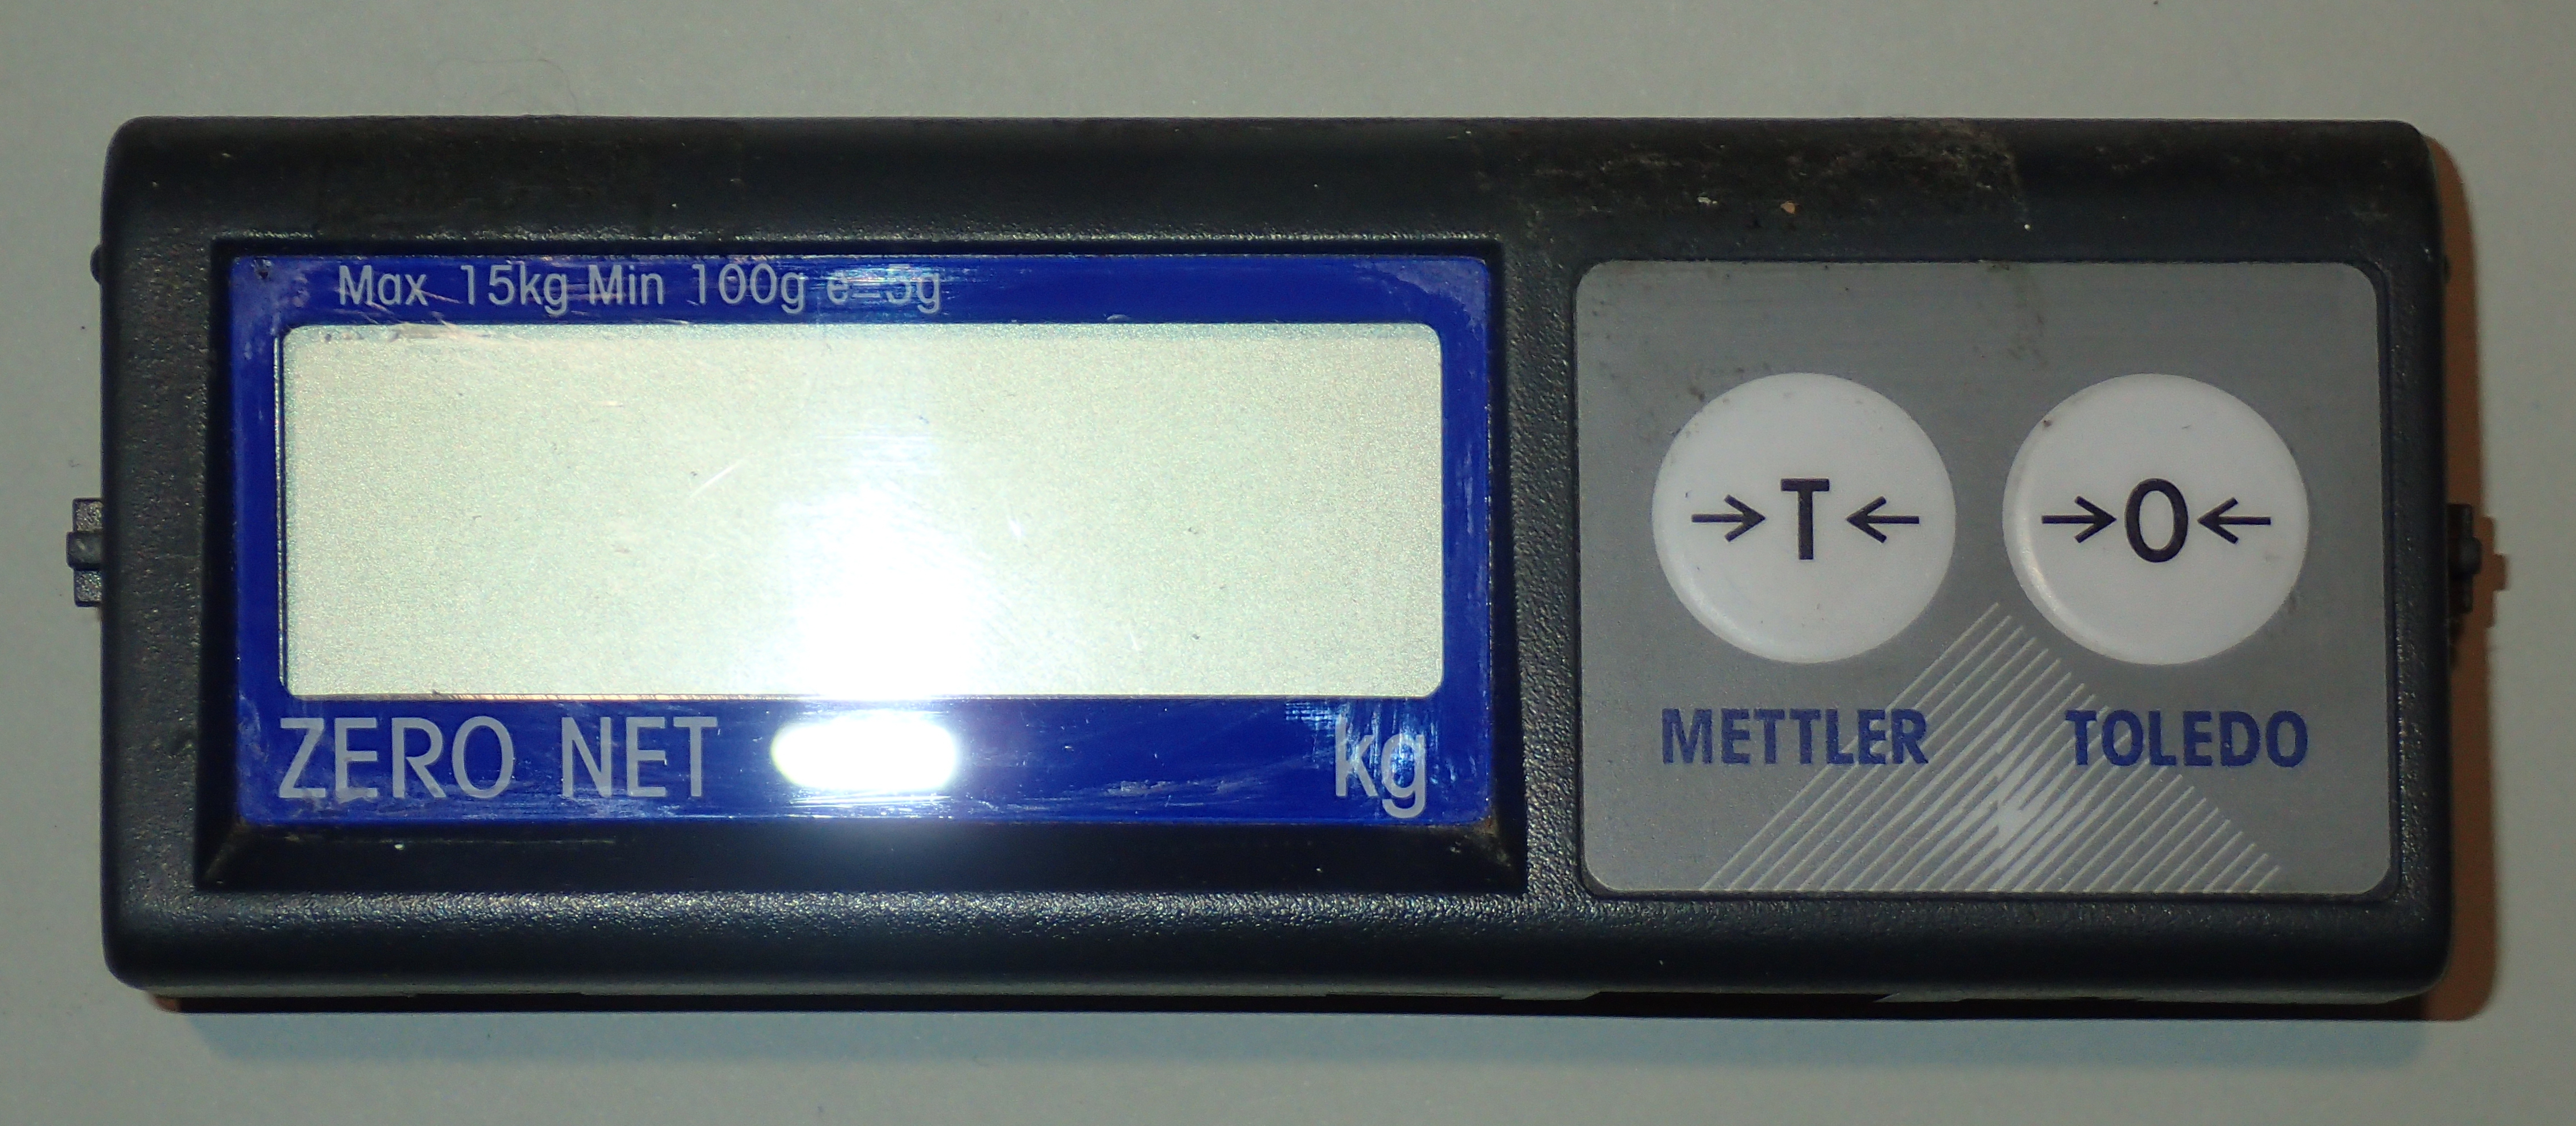 METP0000 LCD panel front